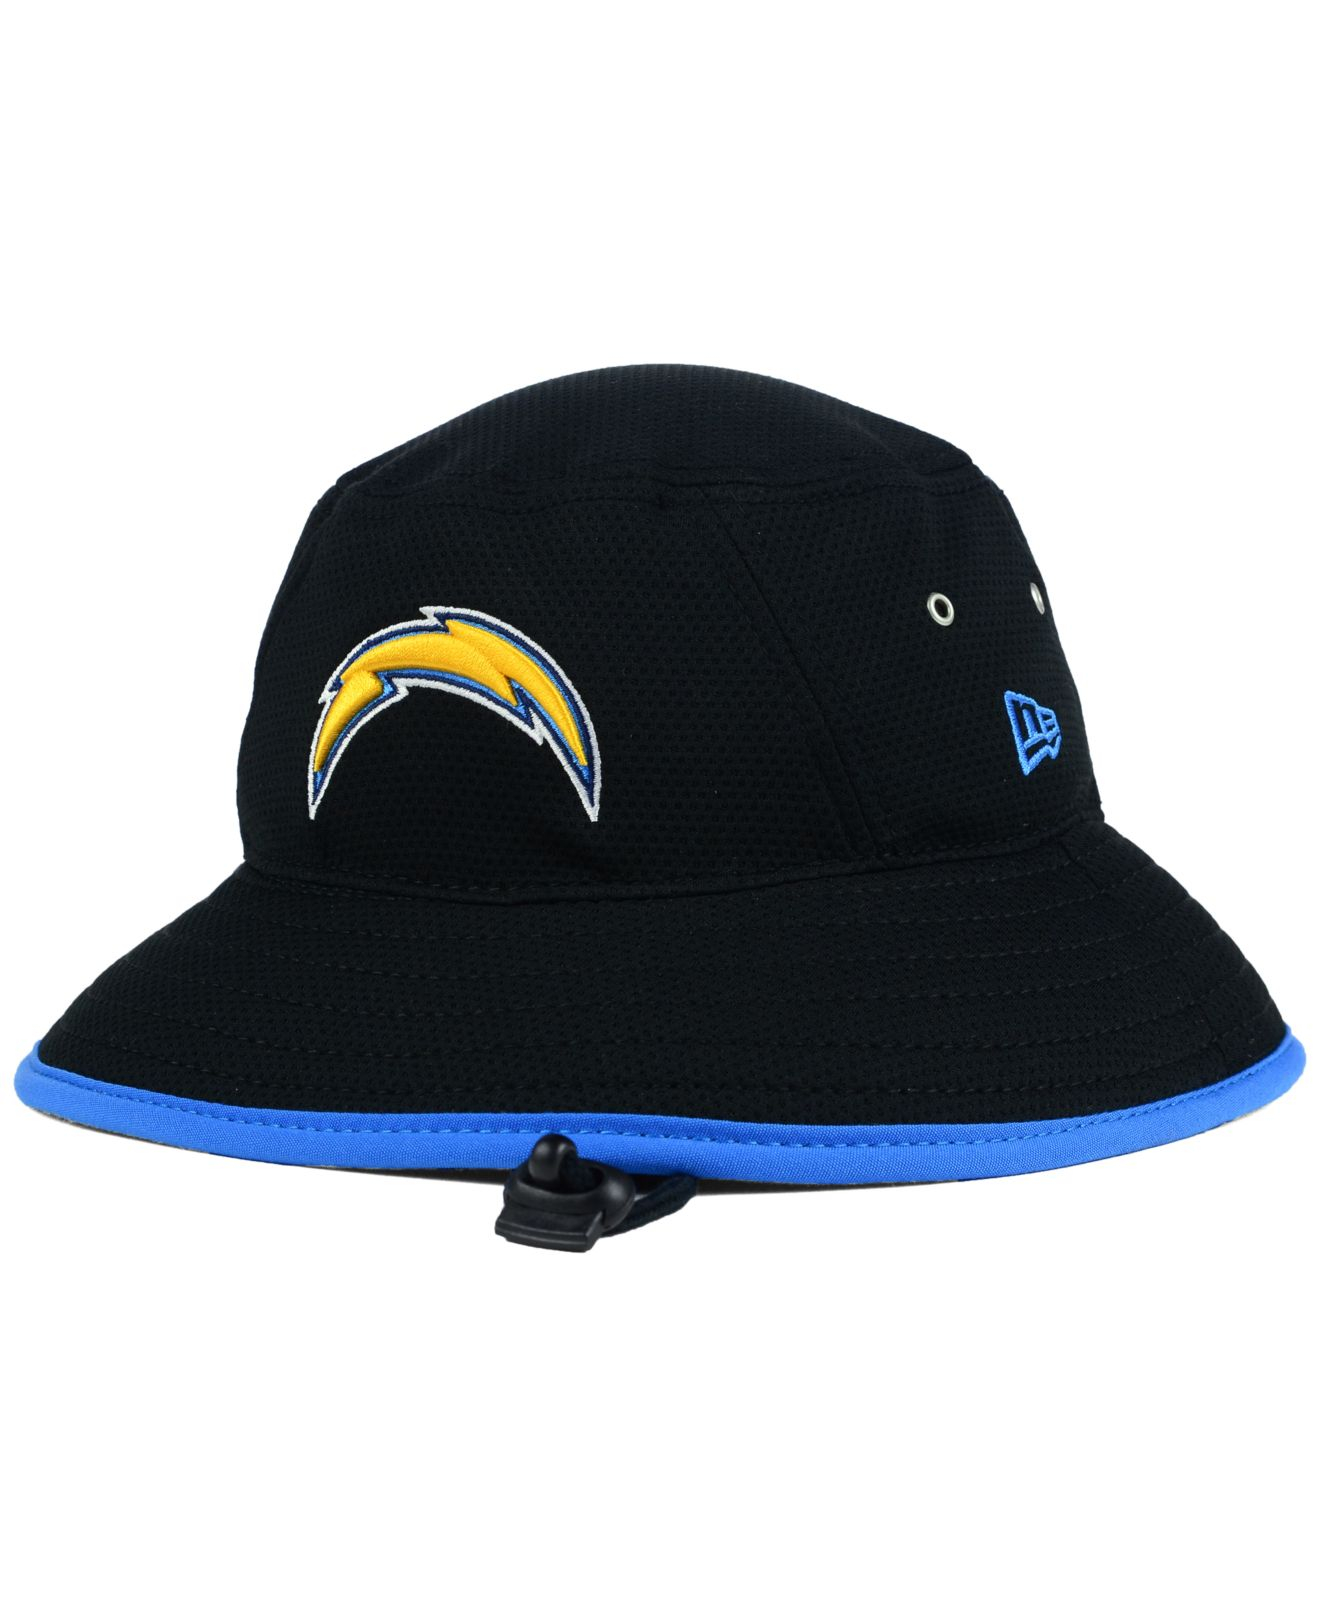 2dba795287aa8 KTZ San Diego Chargers Training Bucket Hat in Black for Men - Lyst